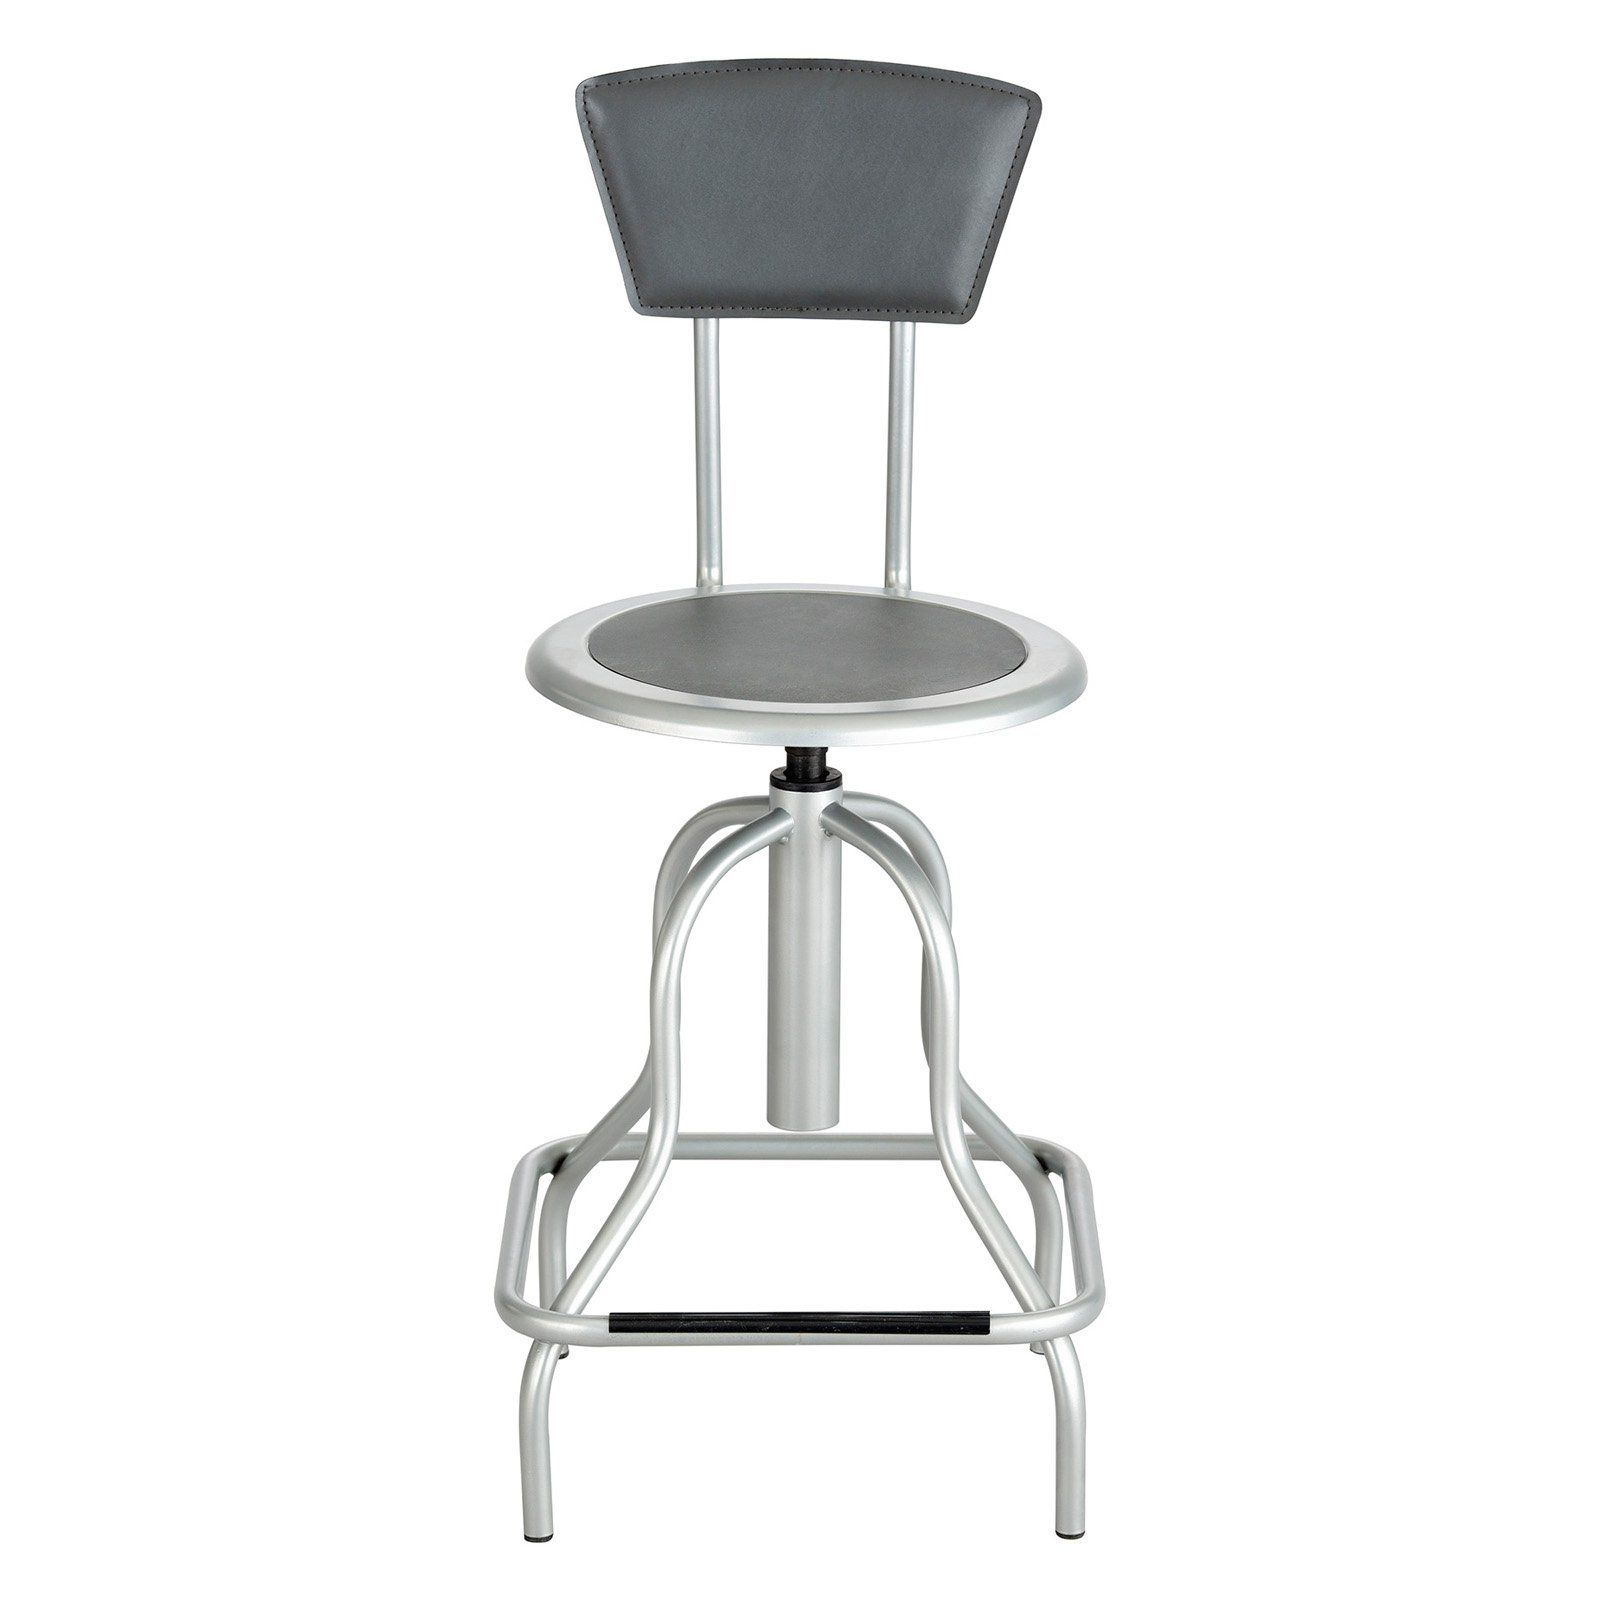 Safco Diesel High Base Stool With Back Silver Stools With Backs